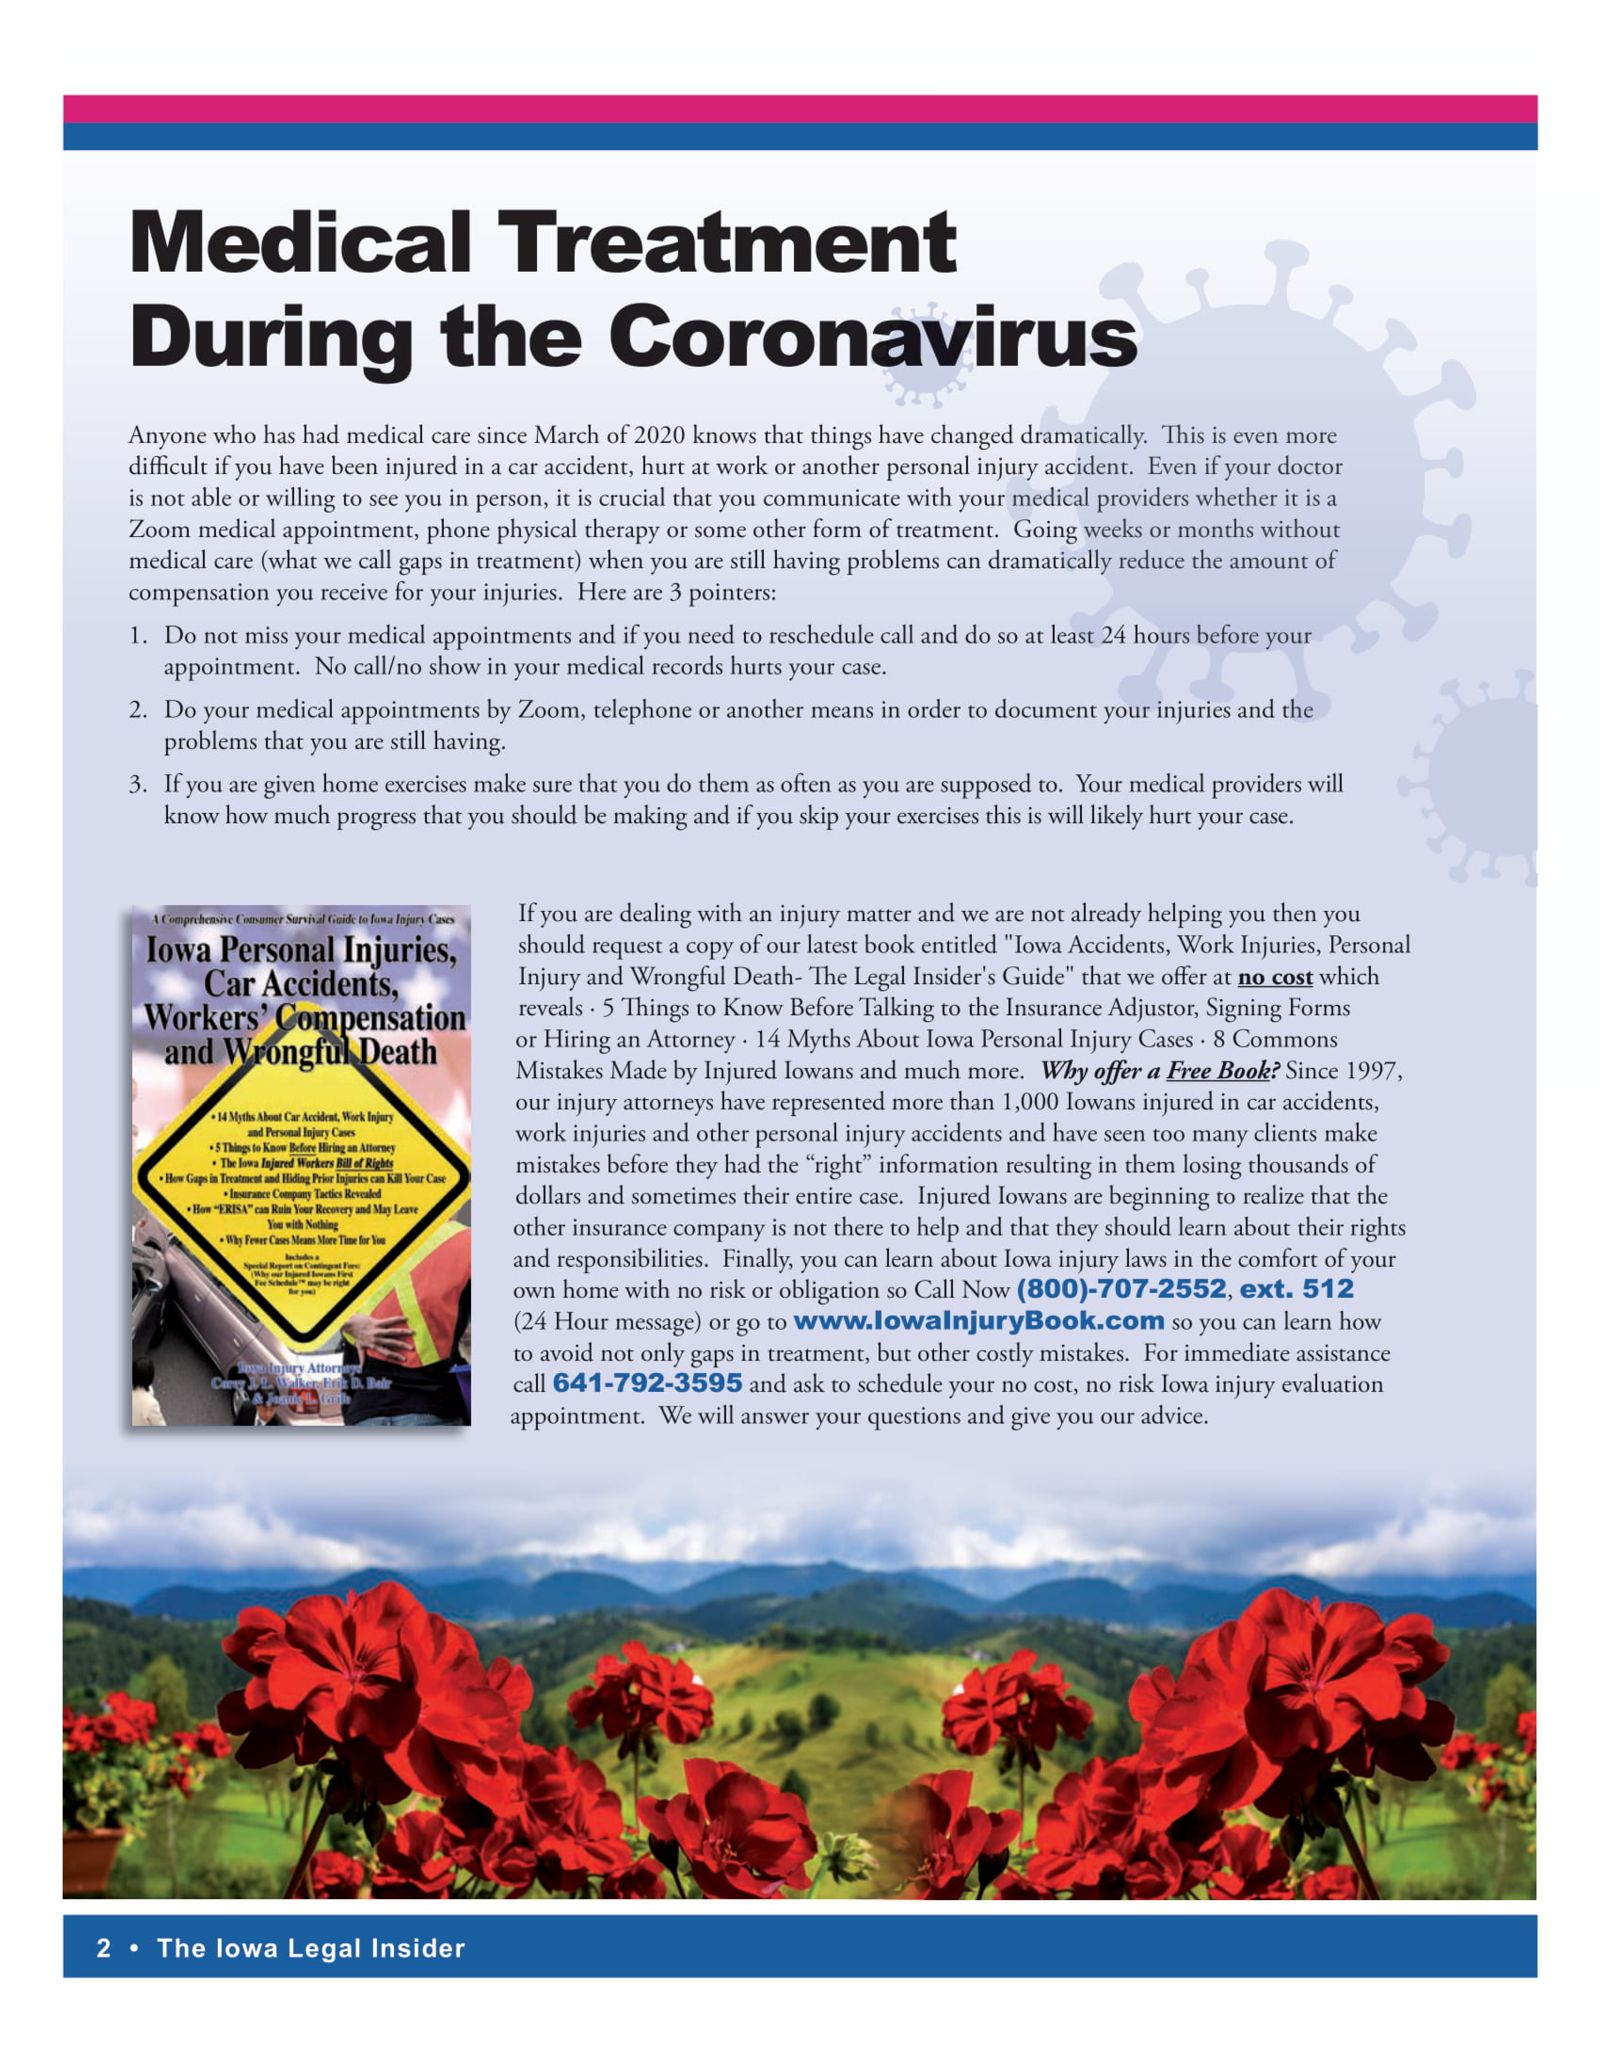 Iowa legal insider Medical treatment during coronavirus